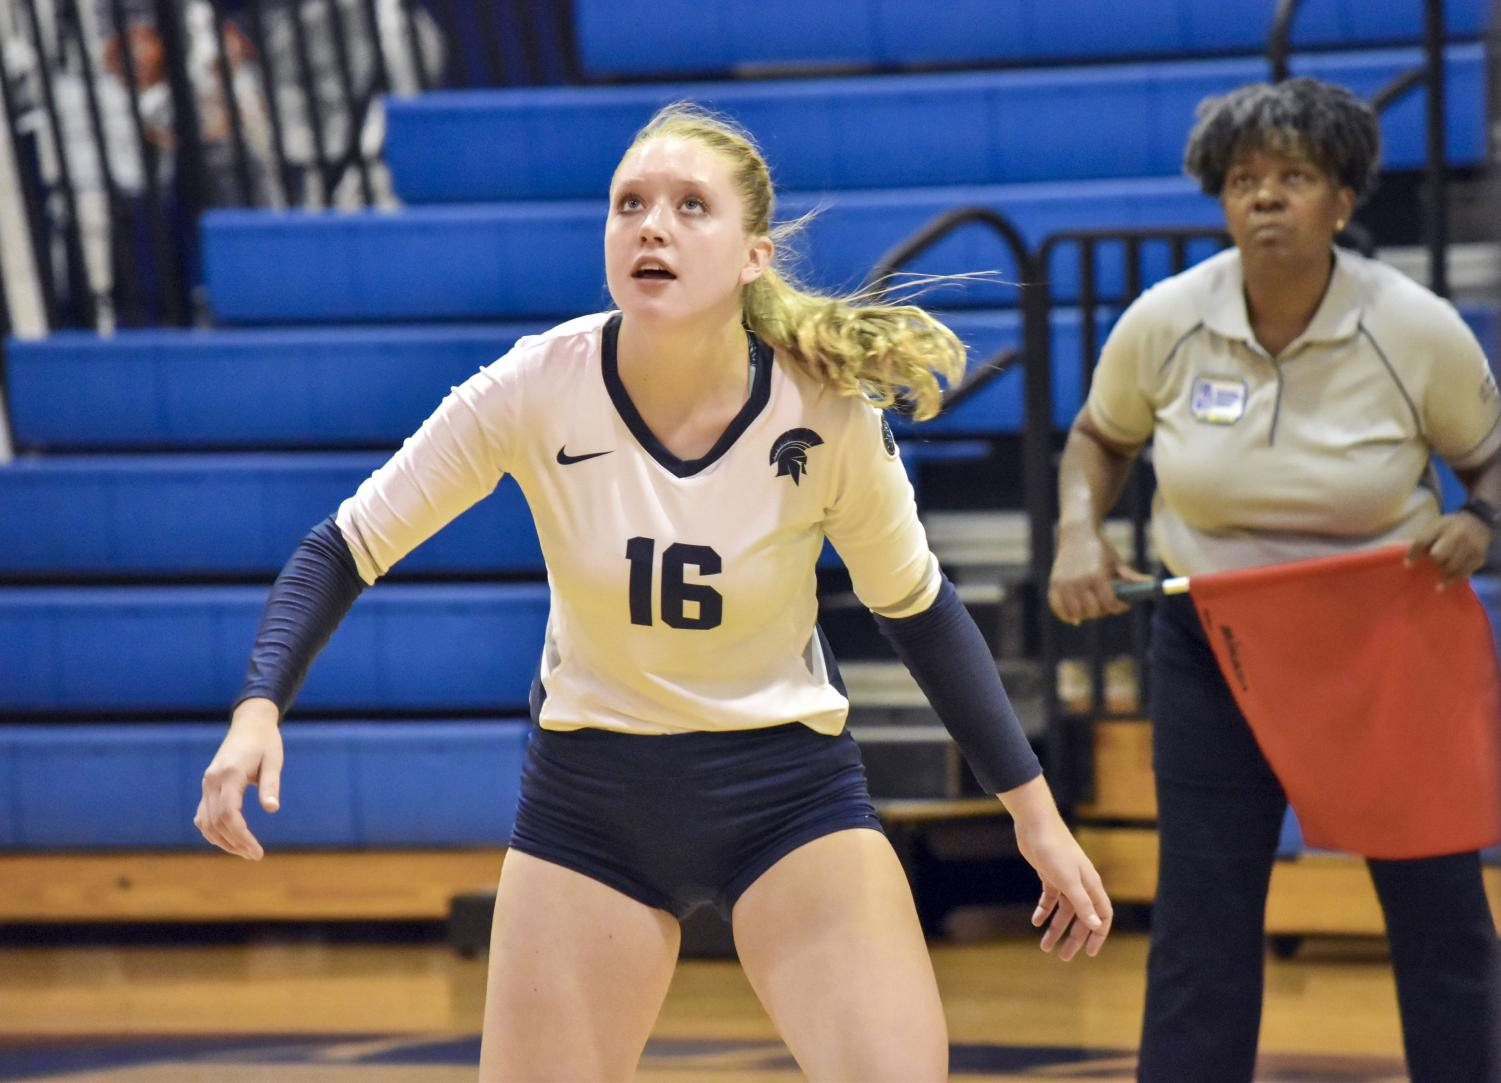 First-year outside hitter Lauren Carmon has filled the role of injured third-year outside hitter Brianna Lemon. Even though she didn't get much playing time early in the season, she has stepped up against tough competition.